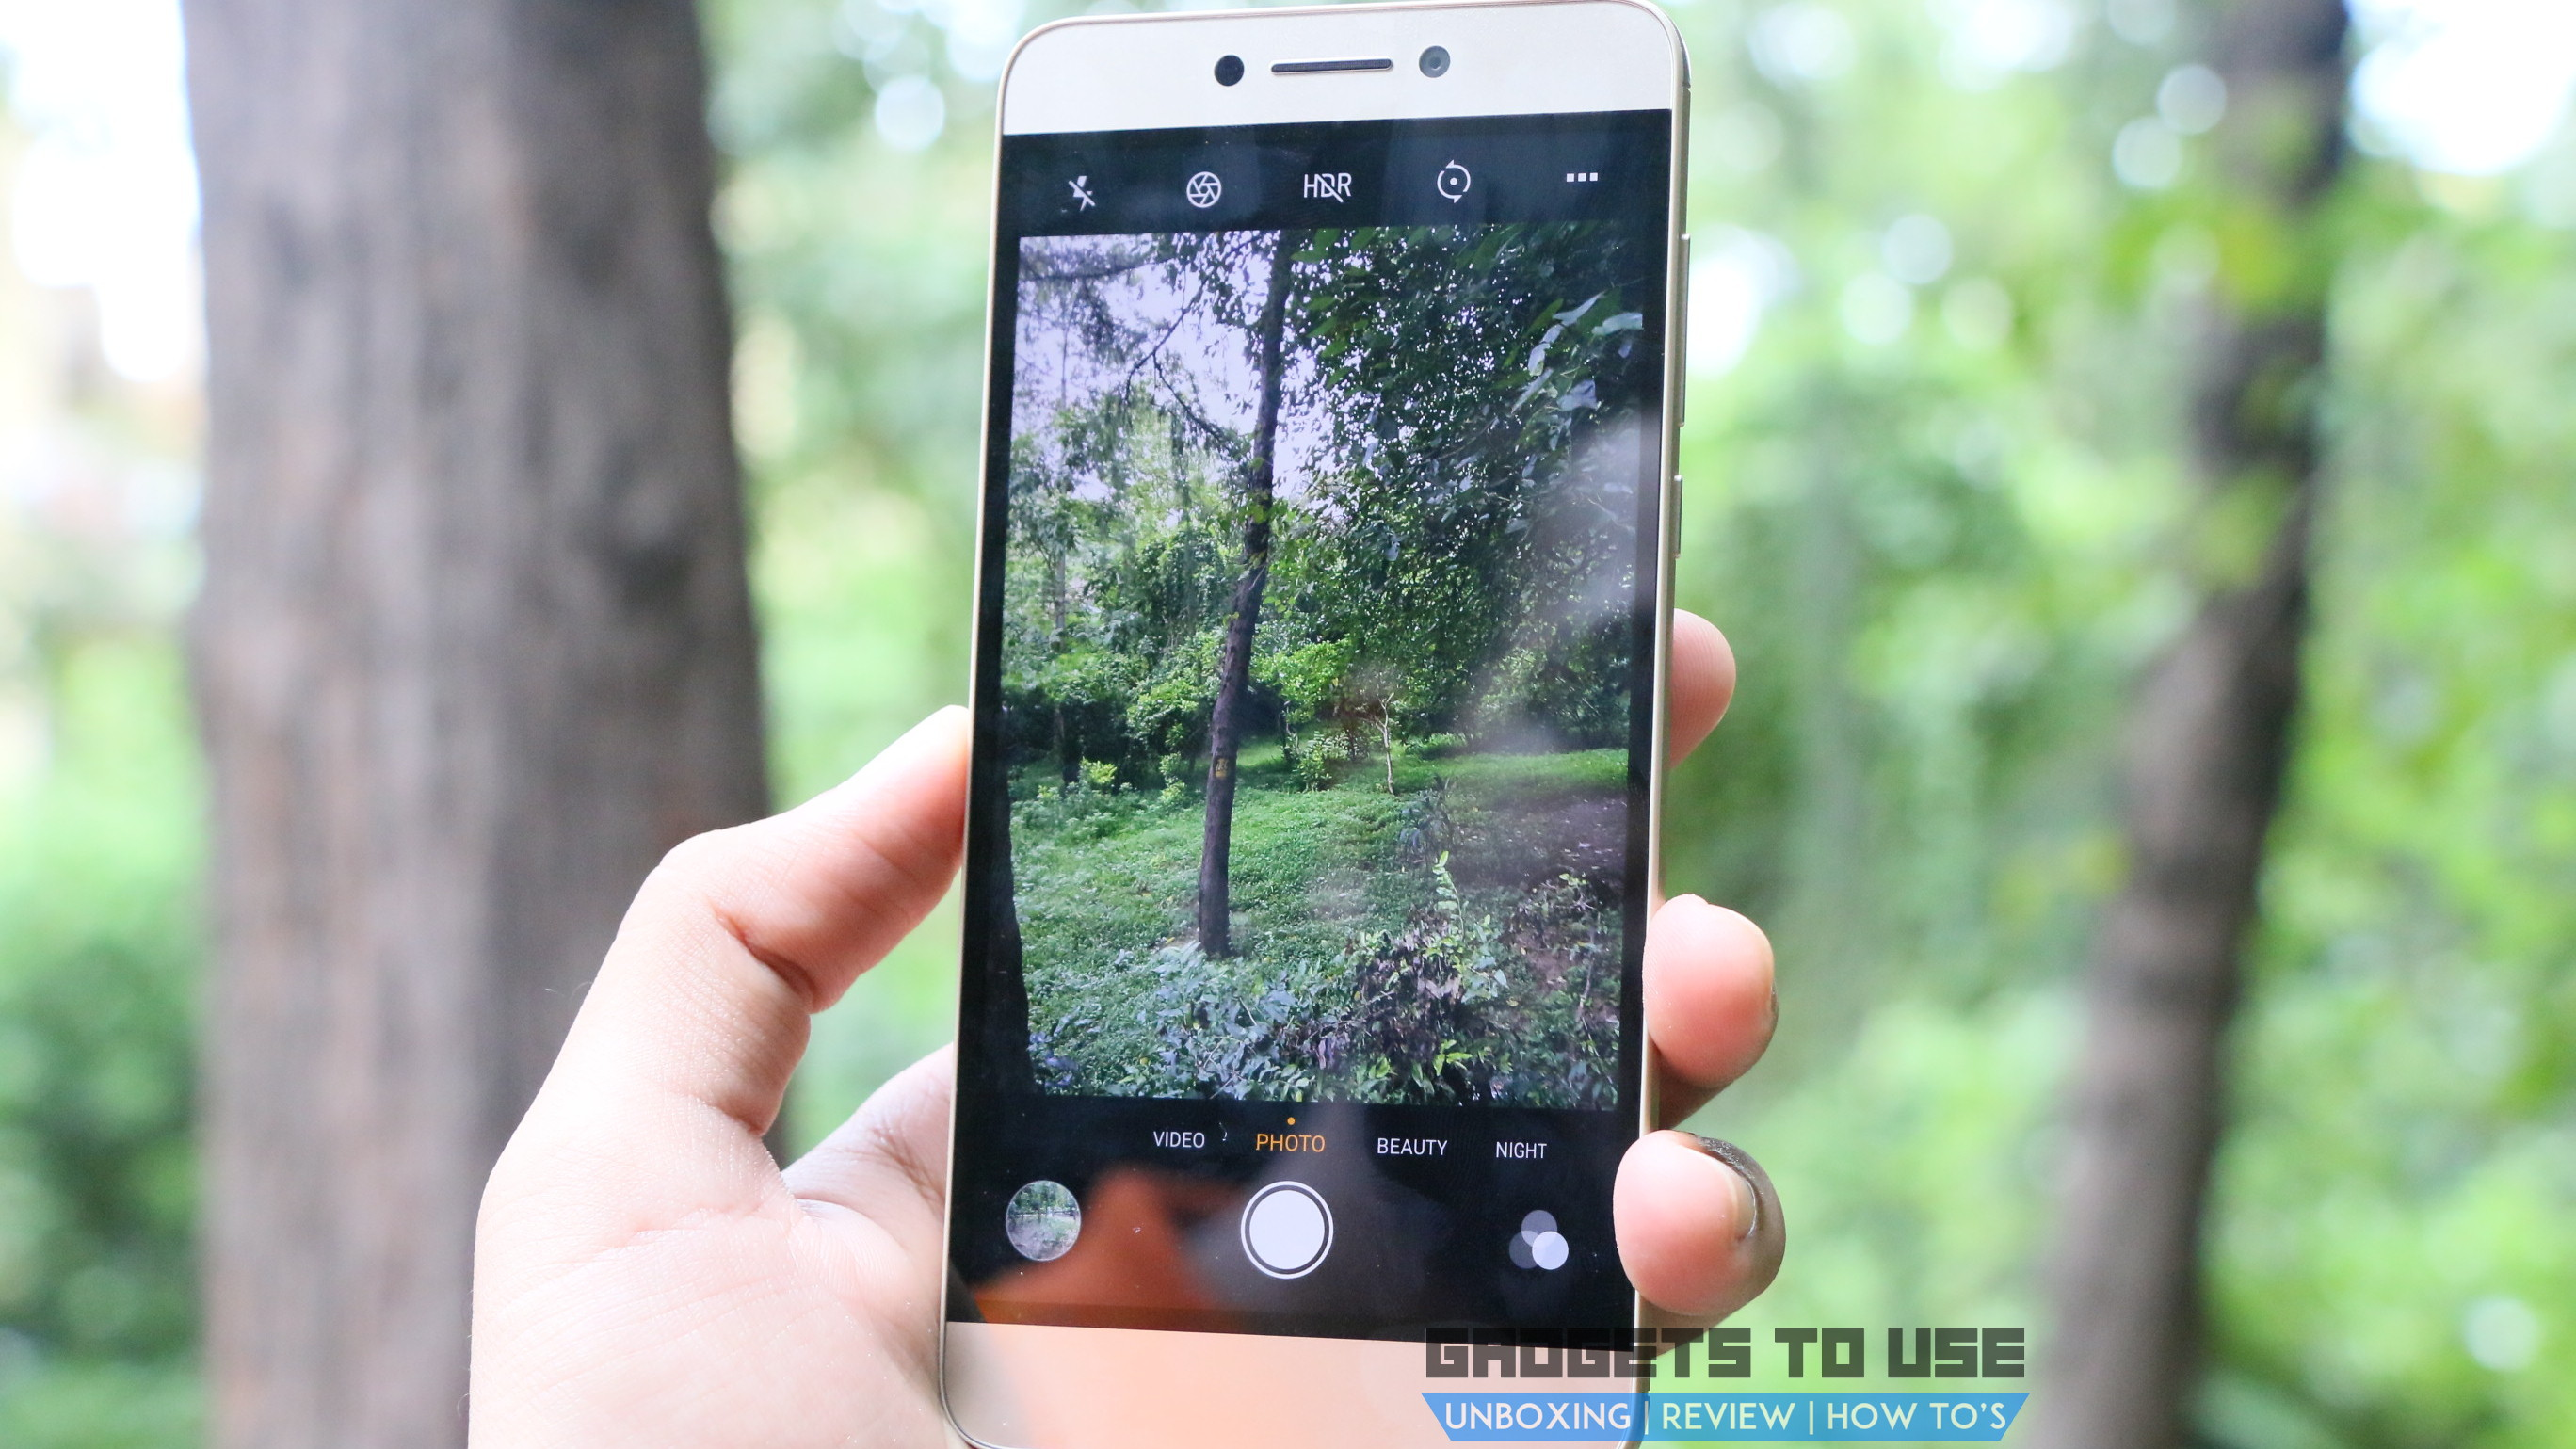 Coolpad Cool Play 6 review: Good camera and UI with Premium